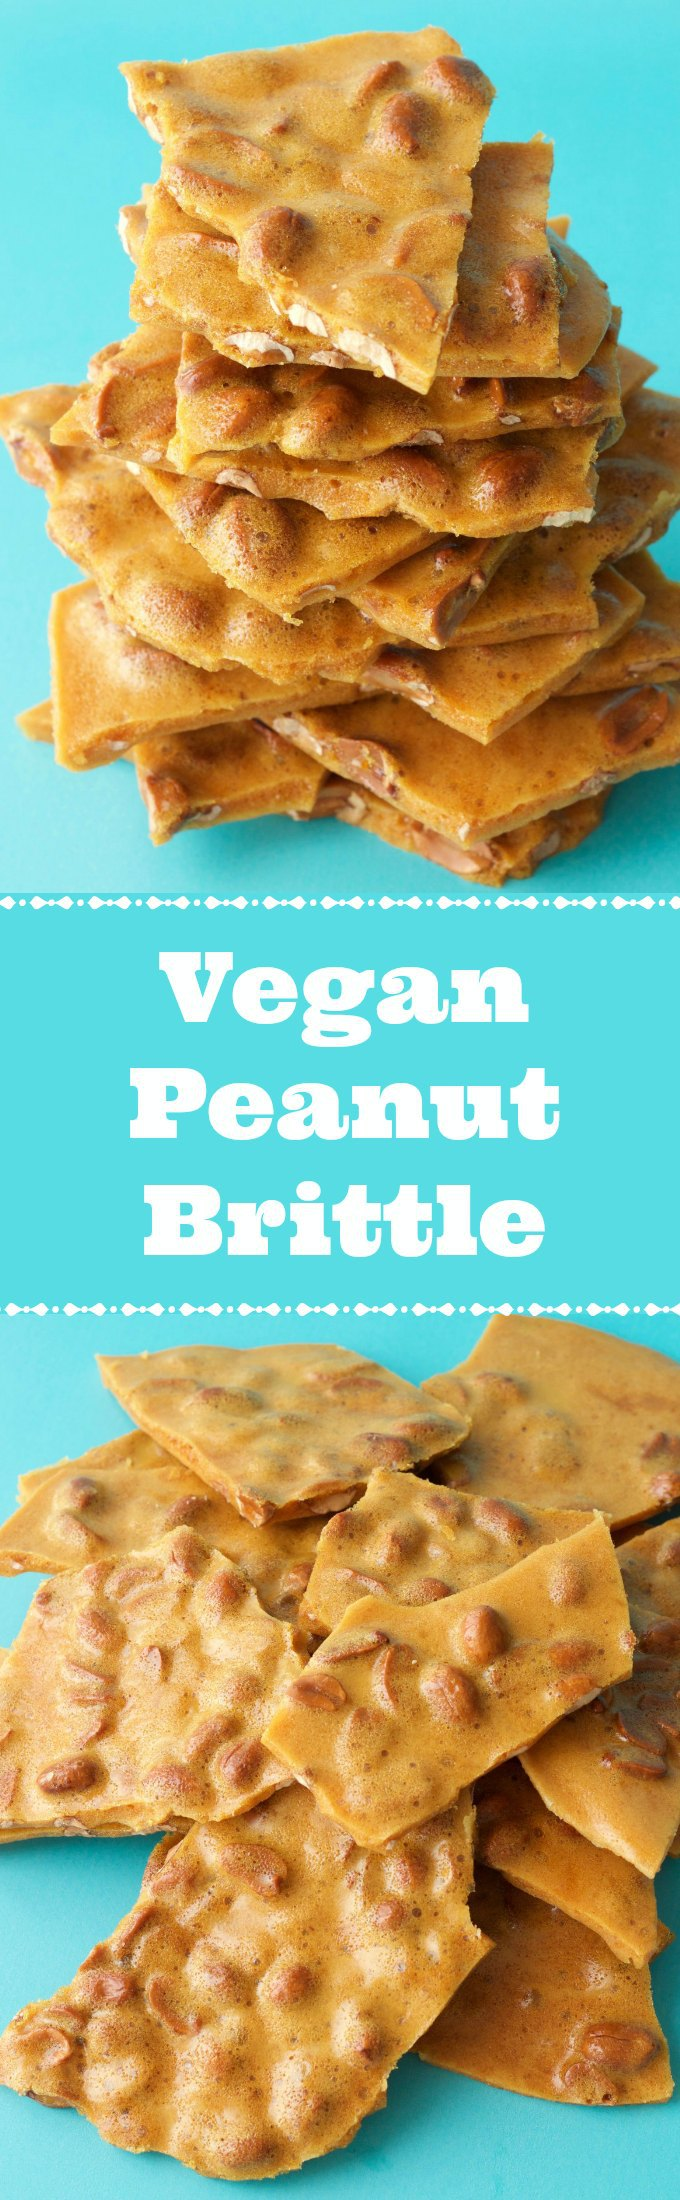 Deliciously sweet and crunchy vegan peanut brittle. This fabulous homemade peanut brittle is slightly salty, packed with peanuts and wonderful as a dessert. Vegan | Vegan Desserts | Gluten-Free | Gluten Free Vegan | Dairy Free | Vegan Recipes | Vegan Candy | lovingitvegan.com